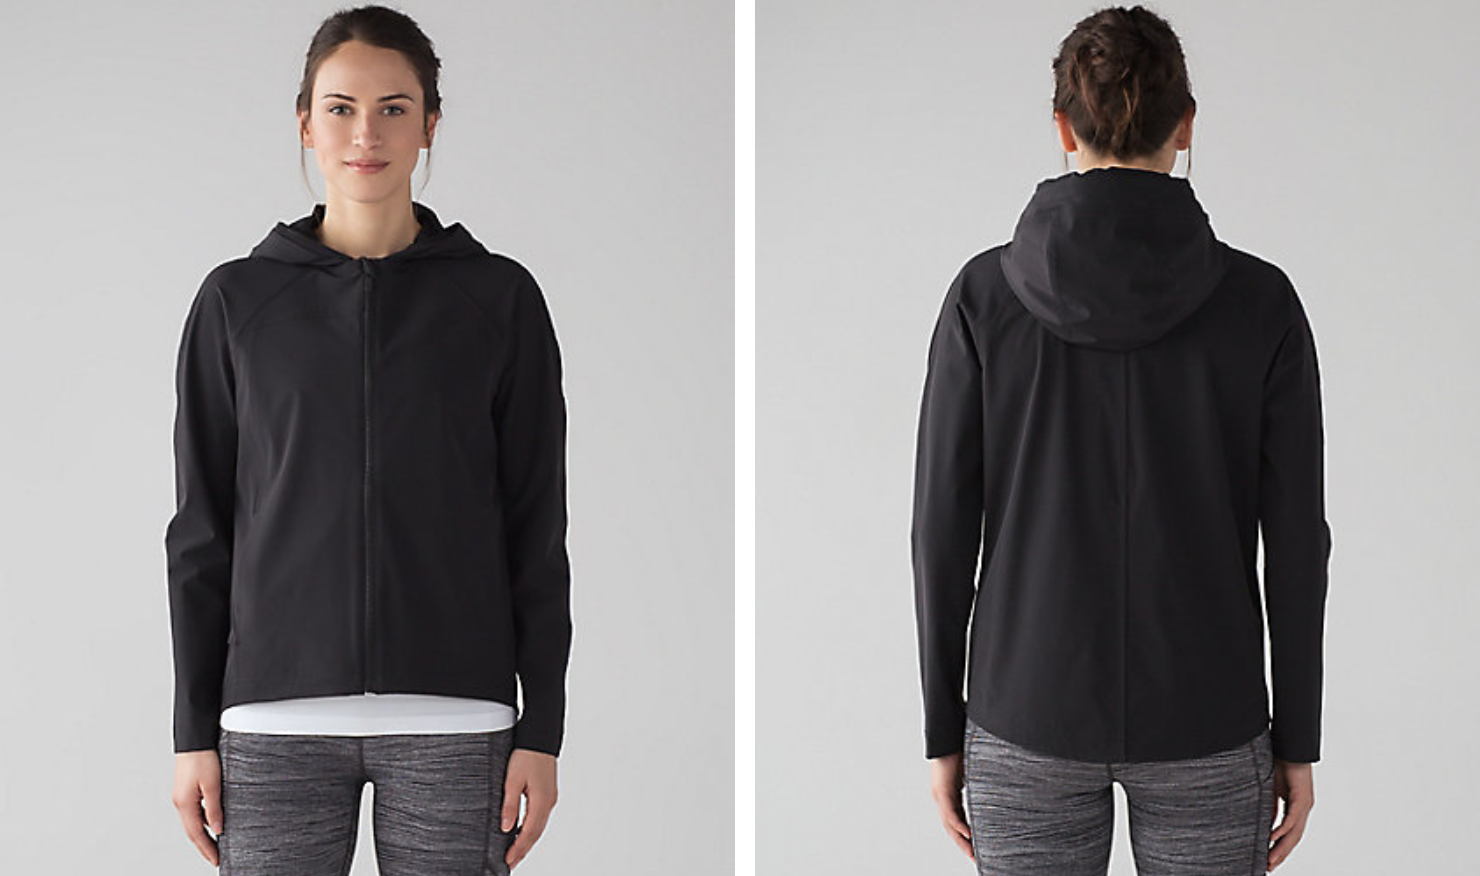 https://api.shopstyle.com/action/apiVisitRetailer?url=https%3A%2F%2Fshop.lululemon.com%2Fp%2Fjackets-and-hoodies-jackets%2FOn-The-Fly-Jacket%2F_%2Fprod8431355%3Frcnt%3D8%26N%3D8b8%26cnt%3D22%26color%3DLW4AFQS_028694&site=www.shopstyle.ca&pid=uid6784-25288972-7